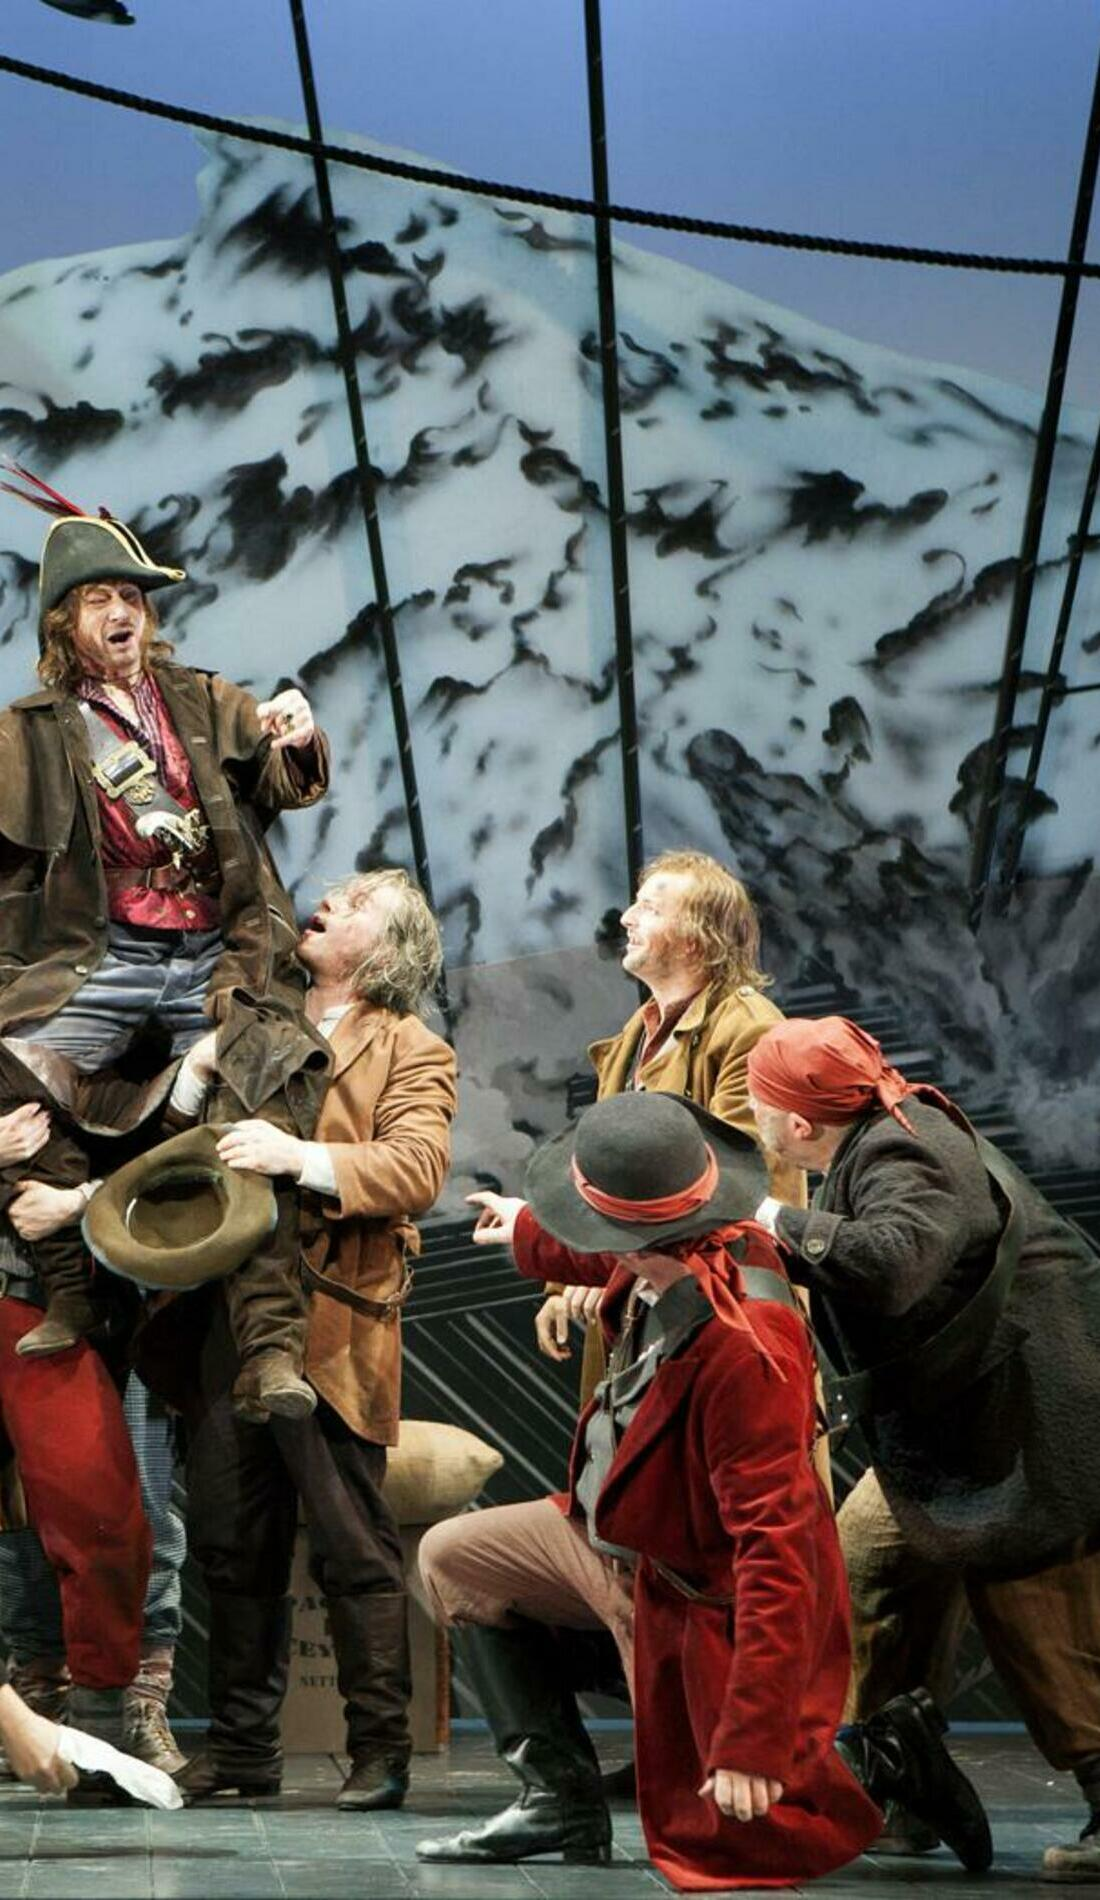 A Pirates of Penzance live event